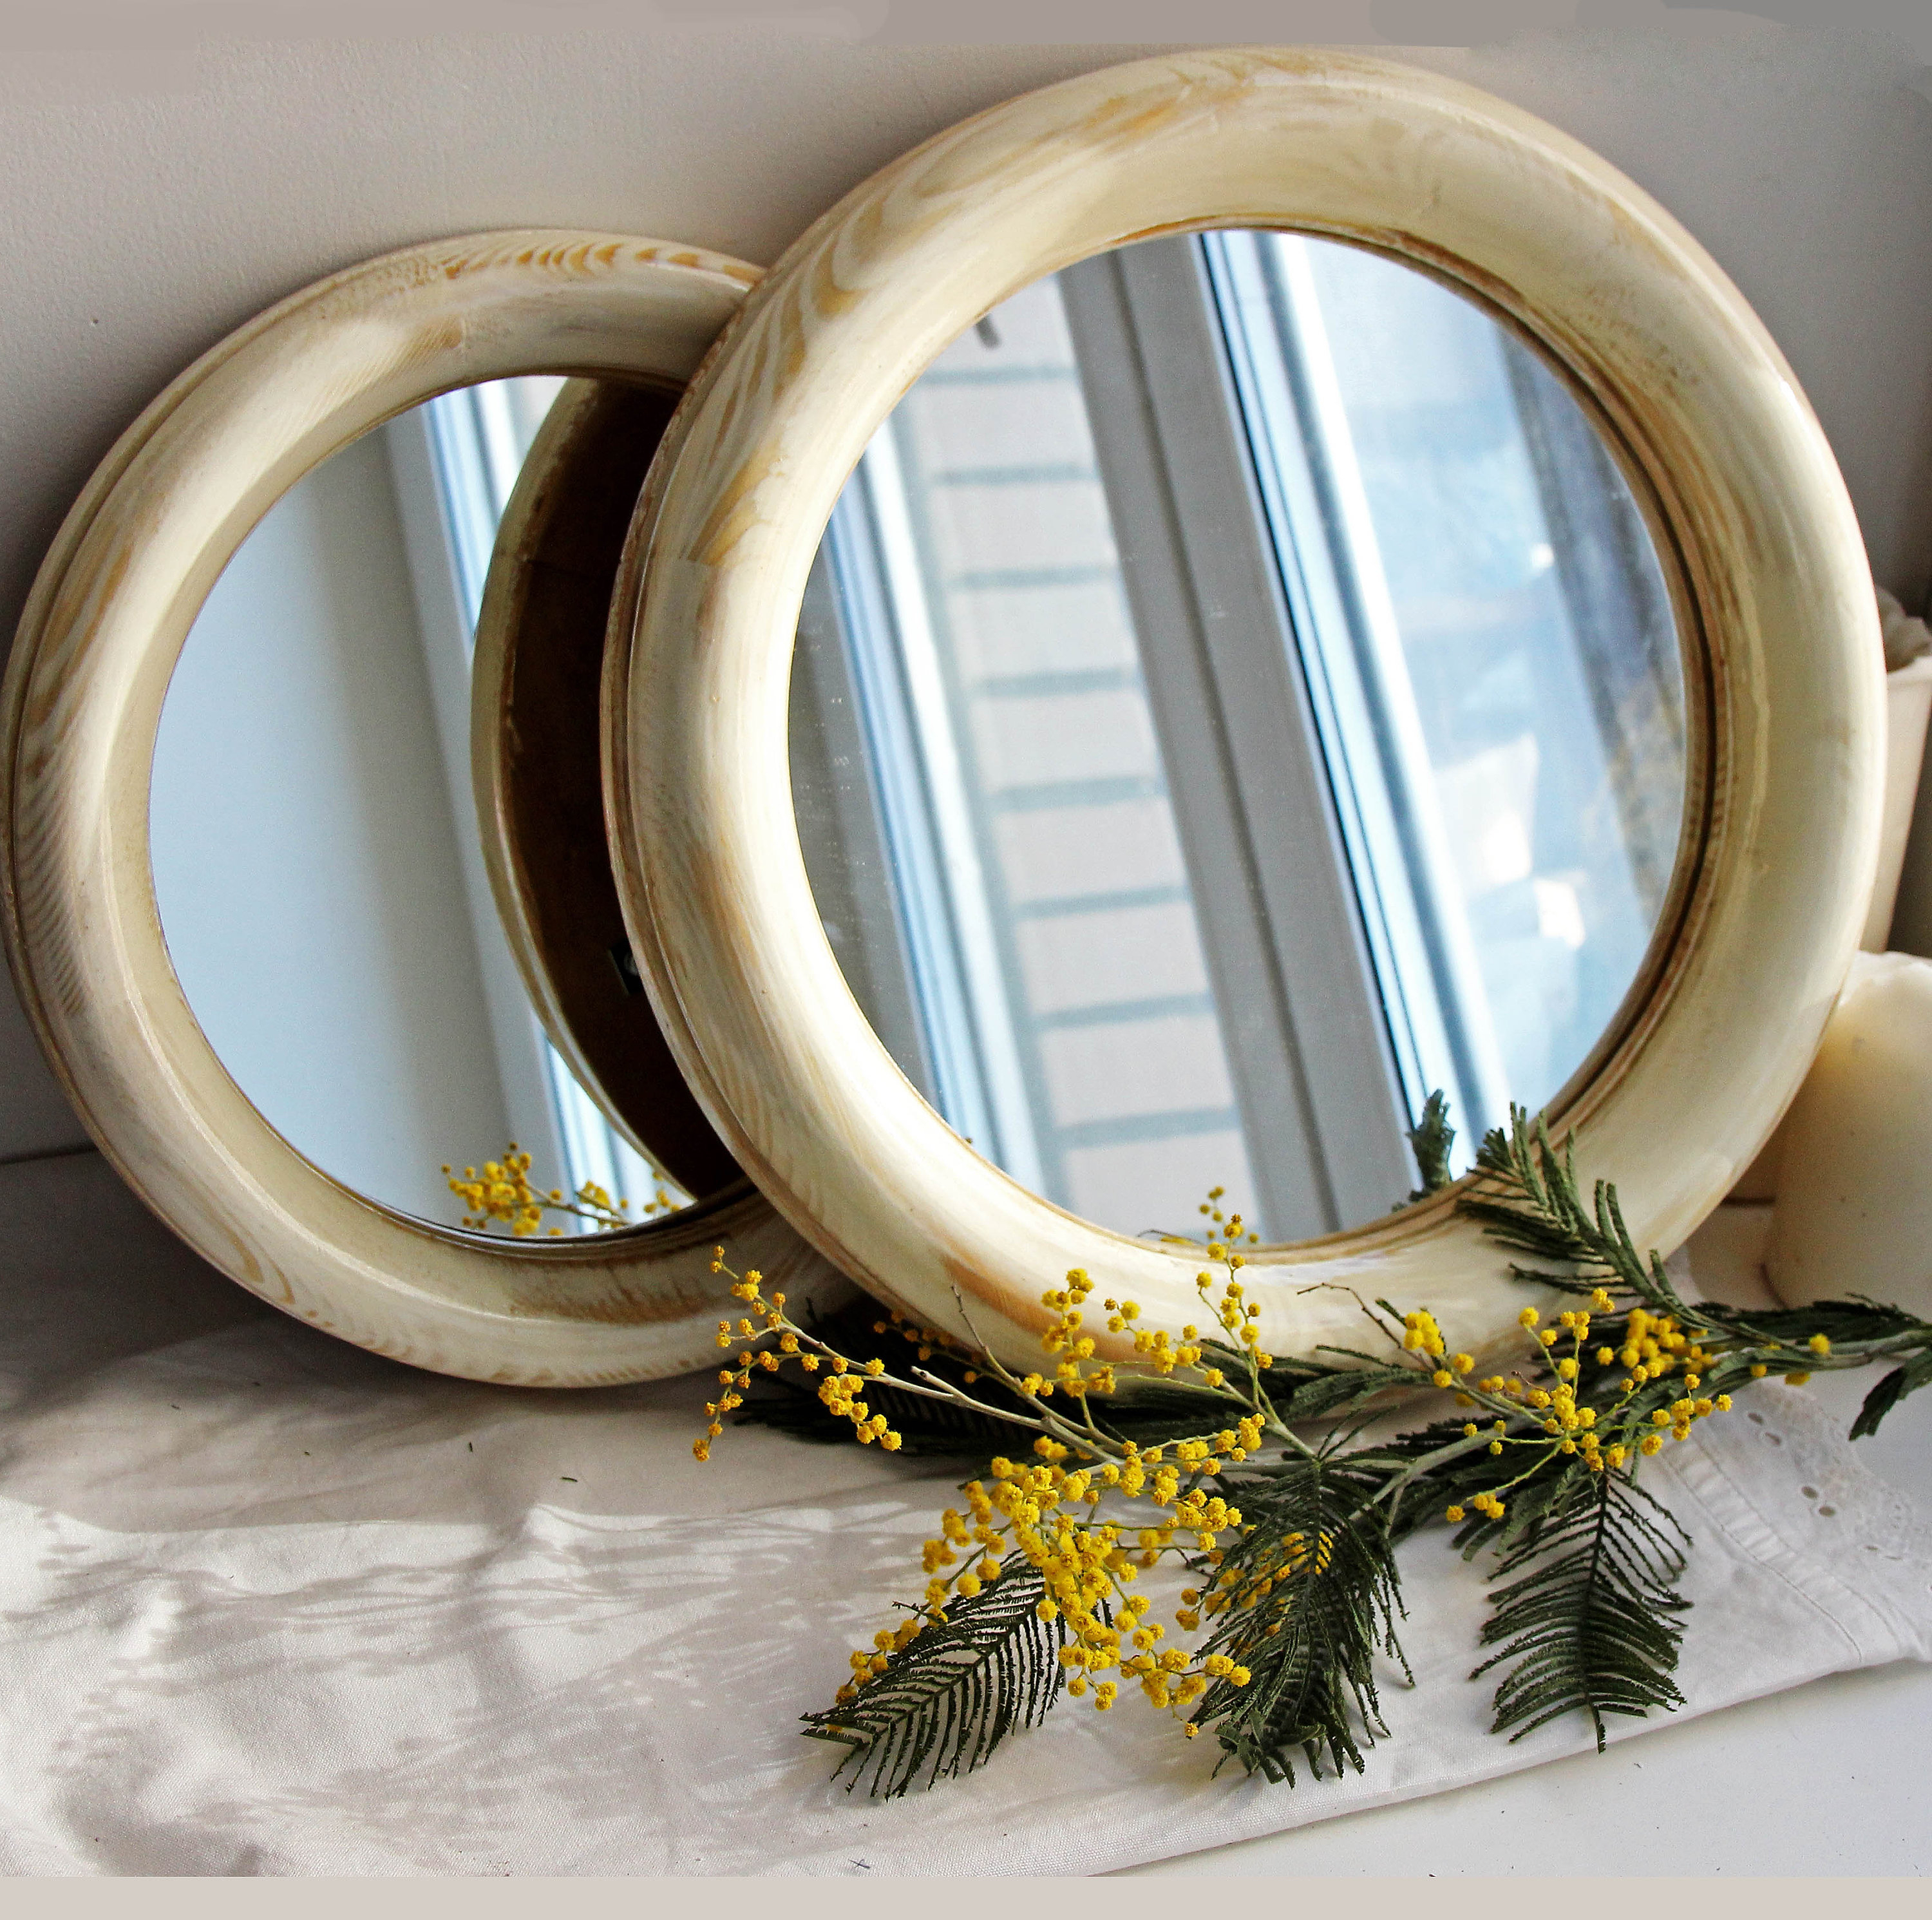 Well Known Small Round Wall Mirrors Throughout Round Mirror Round Decorative Wall Mirror Wood Mirror Frame Wall Mirror Wall Decor Round Ivory Mirror Small Round Framed Wall Mount Mirror (Gallery 15 of 20)